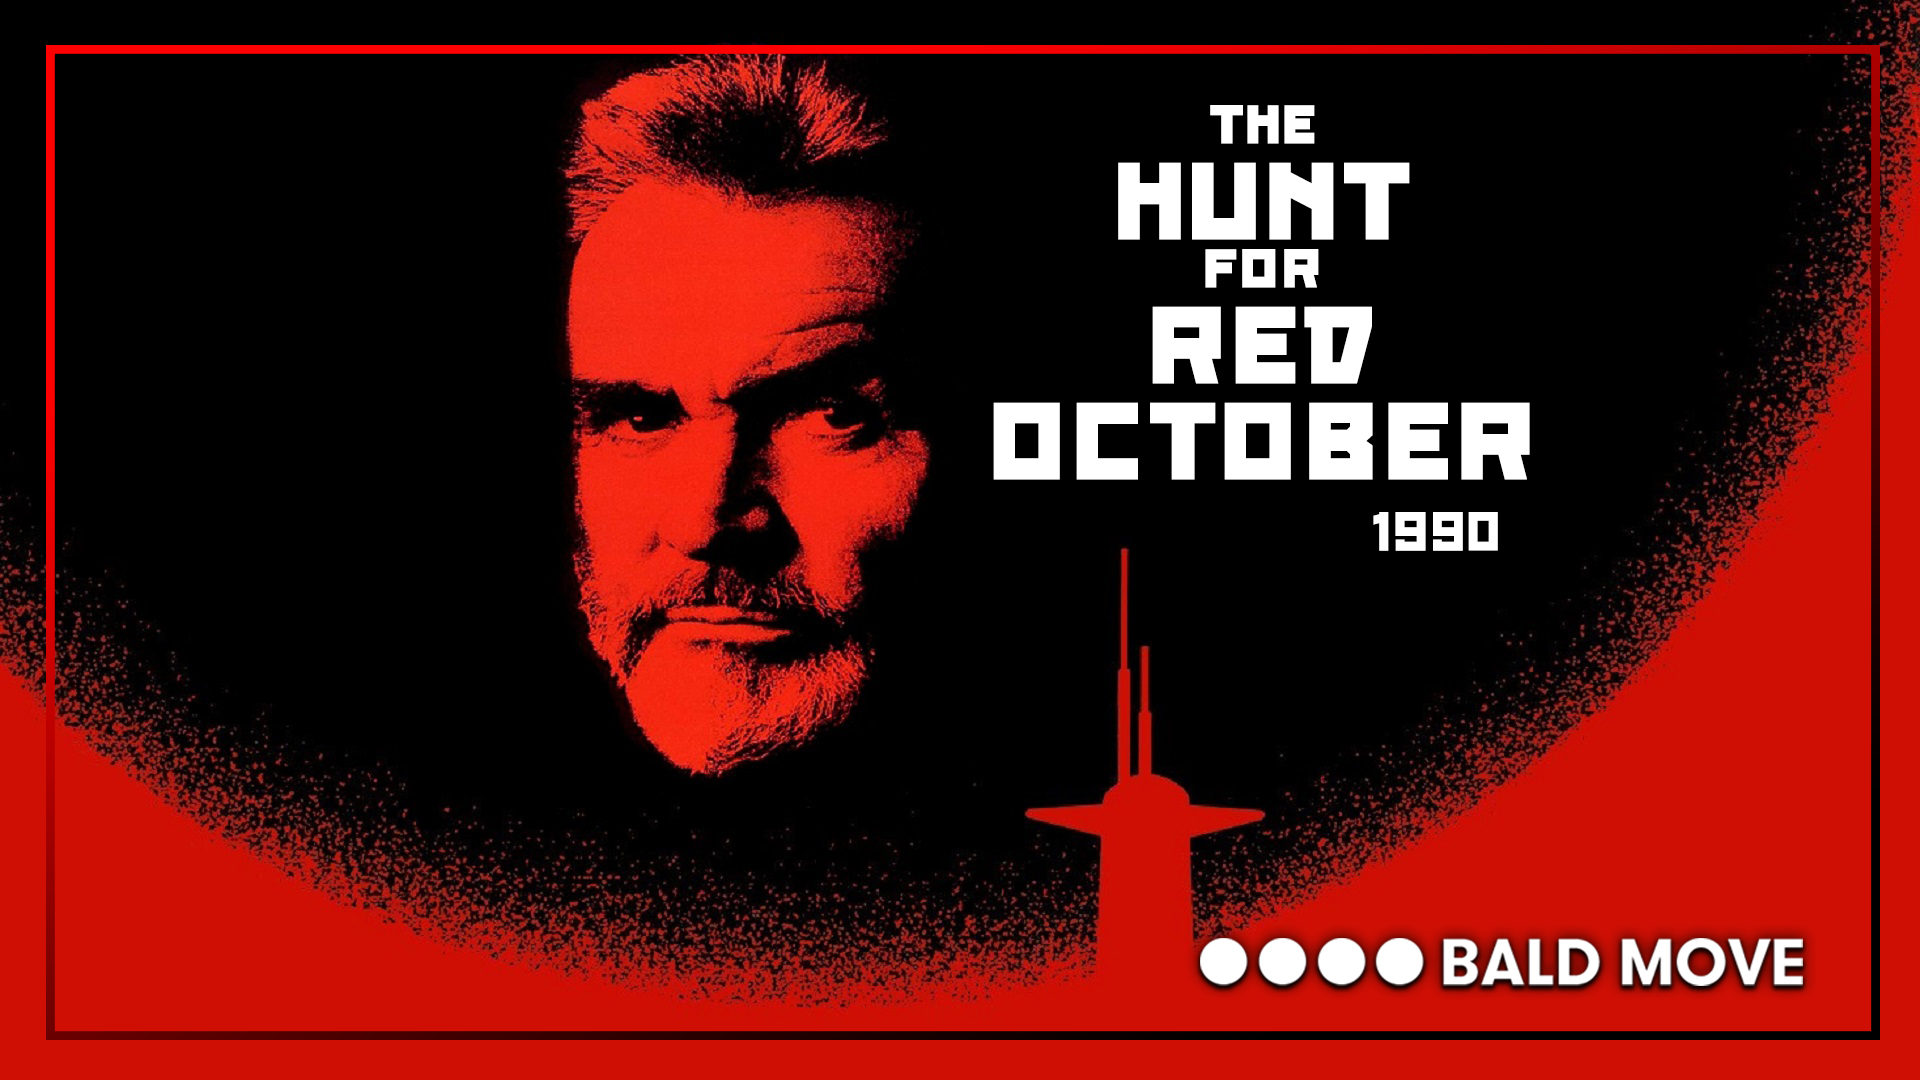 The Hunt For Red October 1990 Bald Move